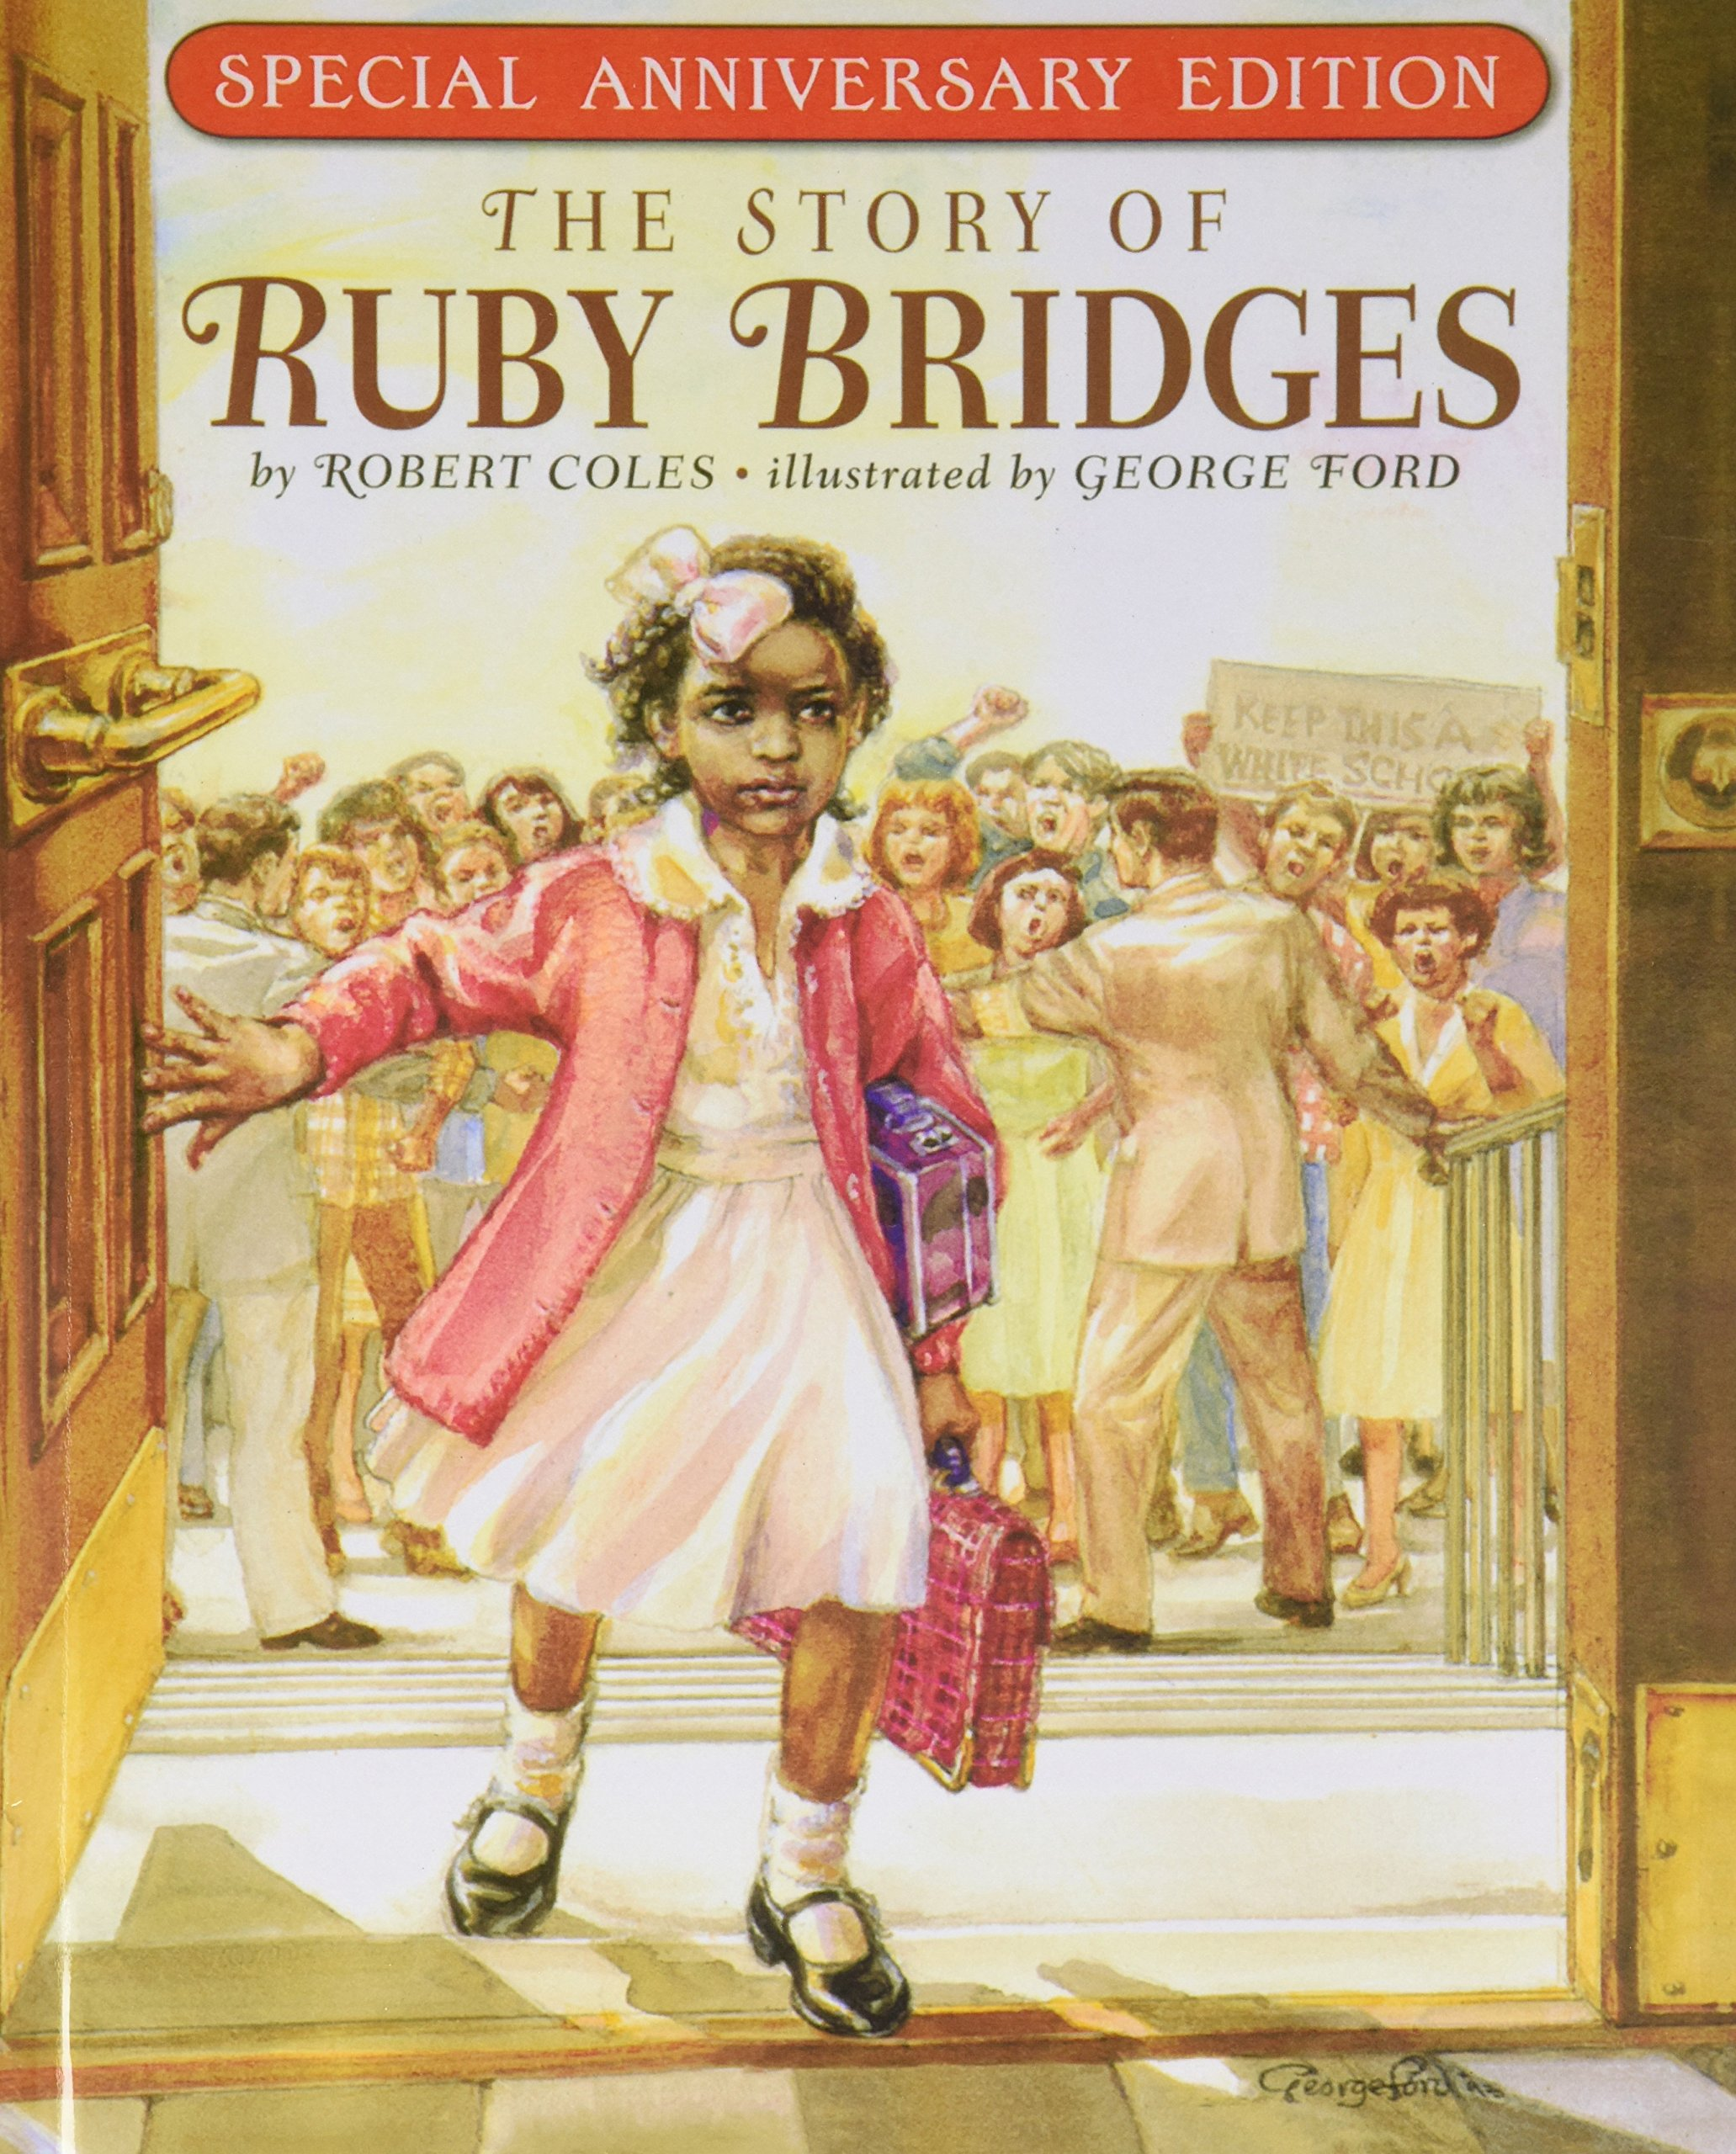 The Story of Ruby Bridges: Coles M D, Dr Robert, Ford, George:  9781613831731: Amazon.com: Books